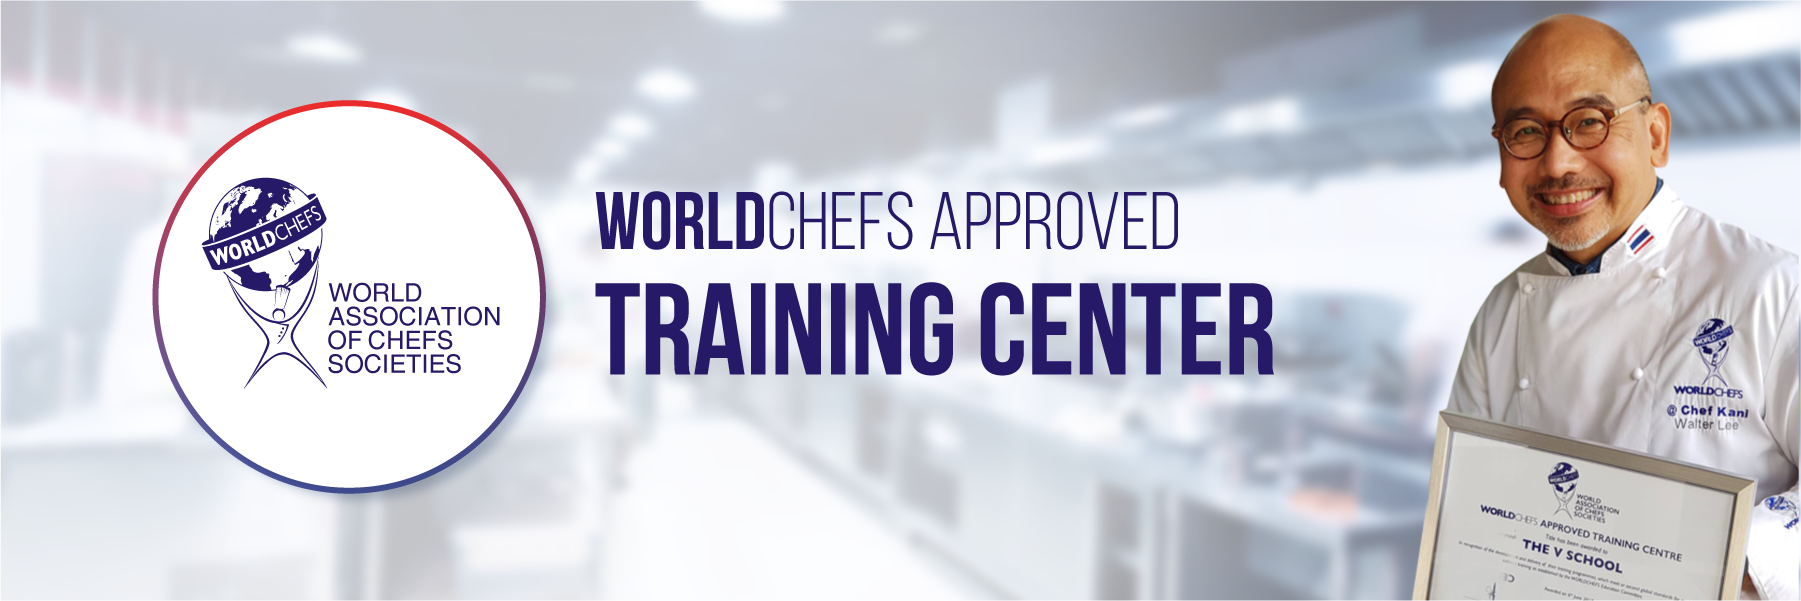 WACs Approved Training Center